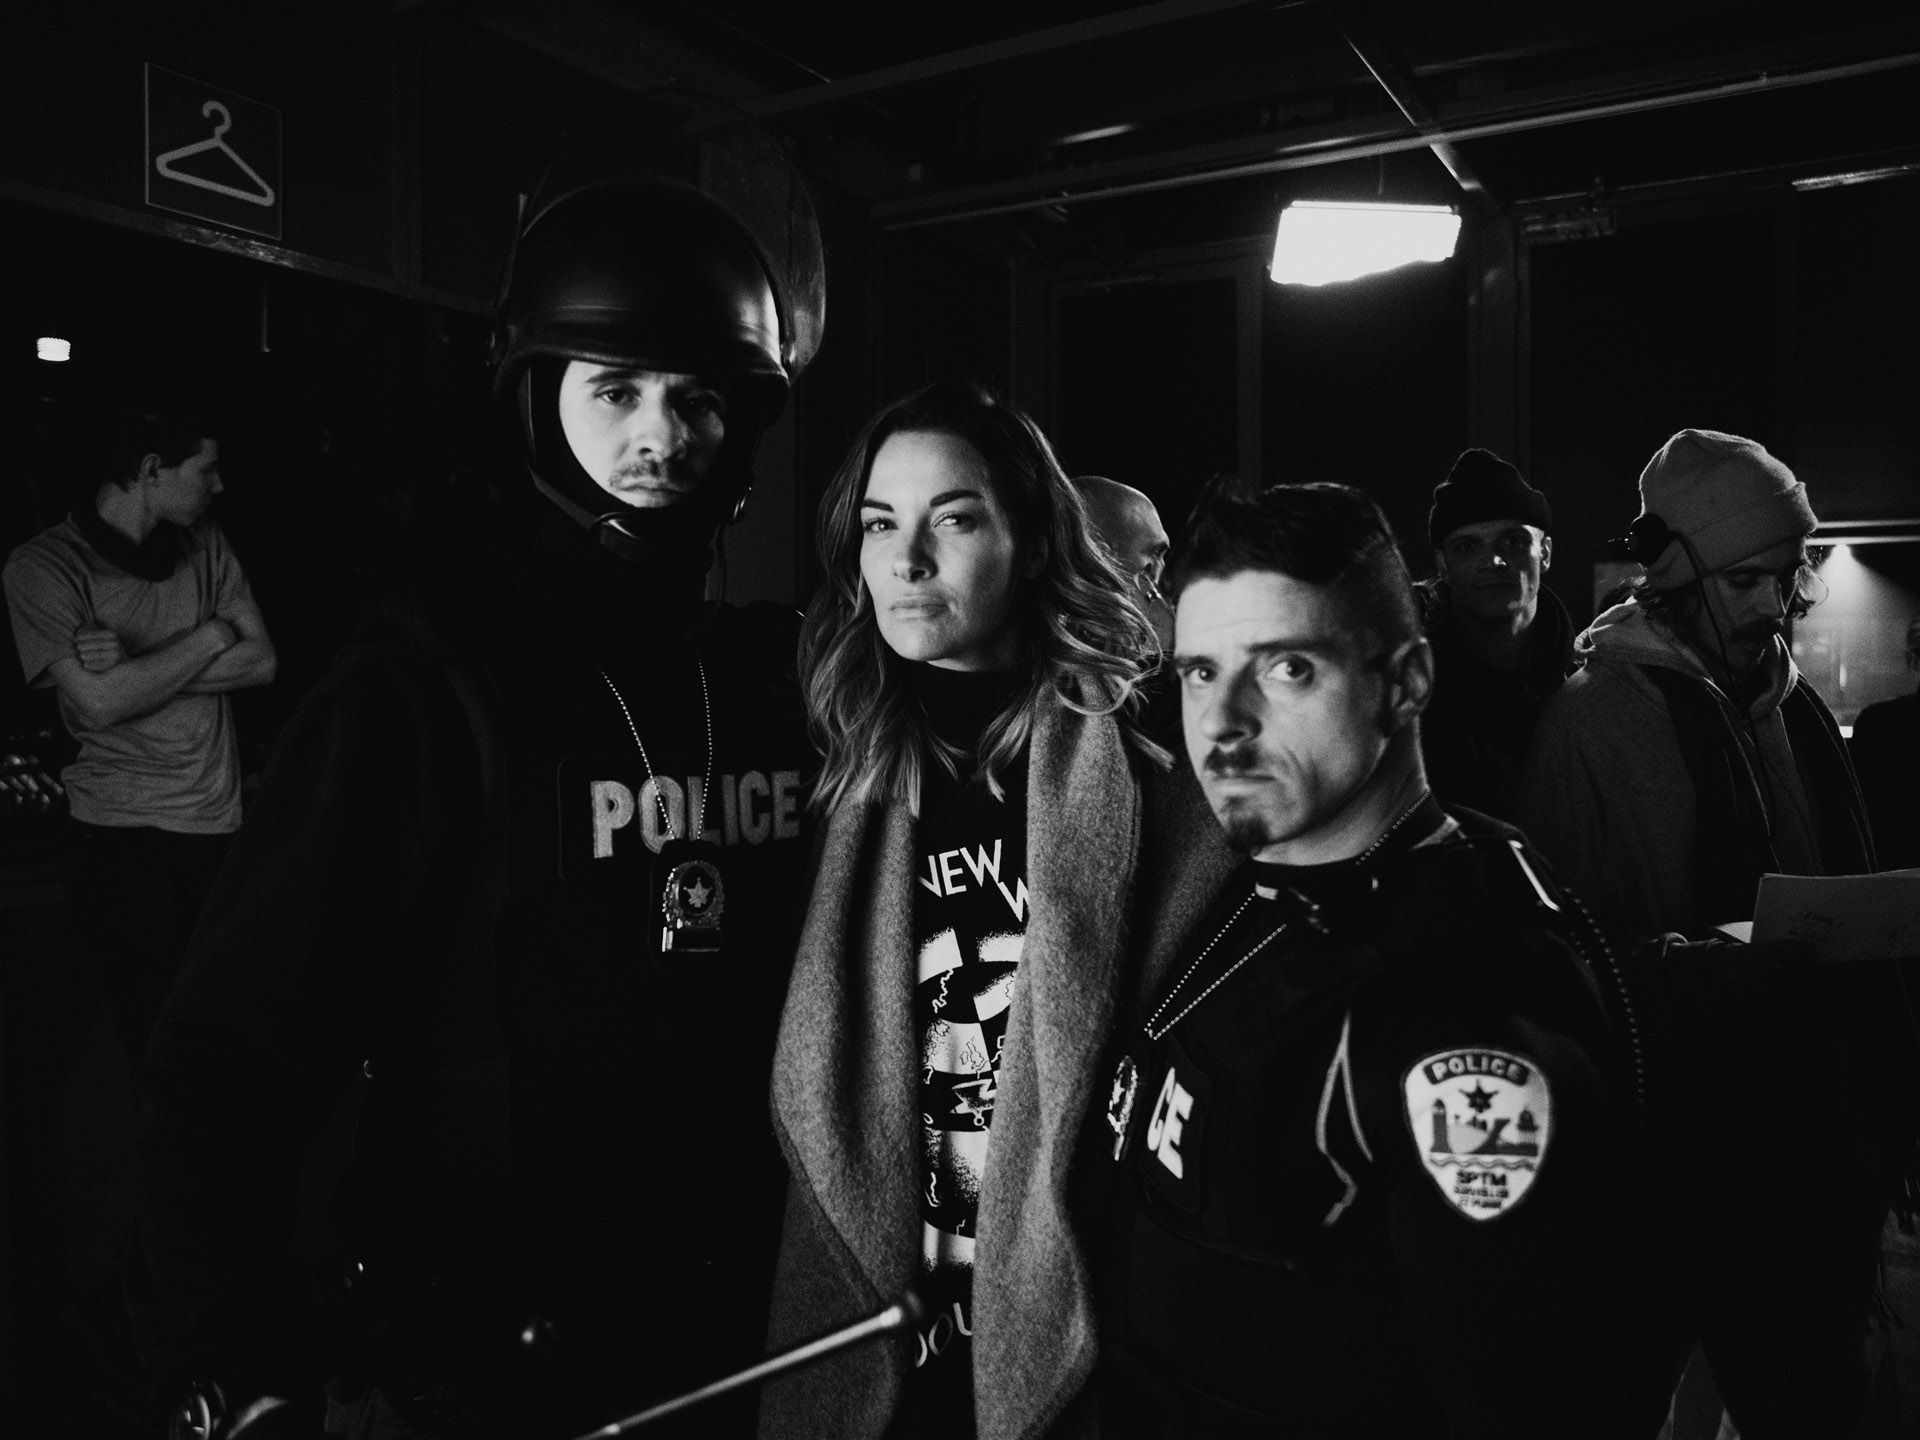 actors Hugolin Chevrette-Landesque and Emile Schneider dressed as cops posing with woman in between them in behind the scenes for TV series La Loi C'est La Loi filmed by Les Gamins for TV5 Unis